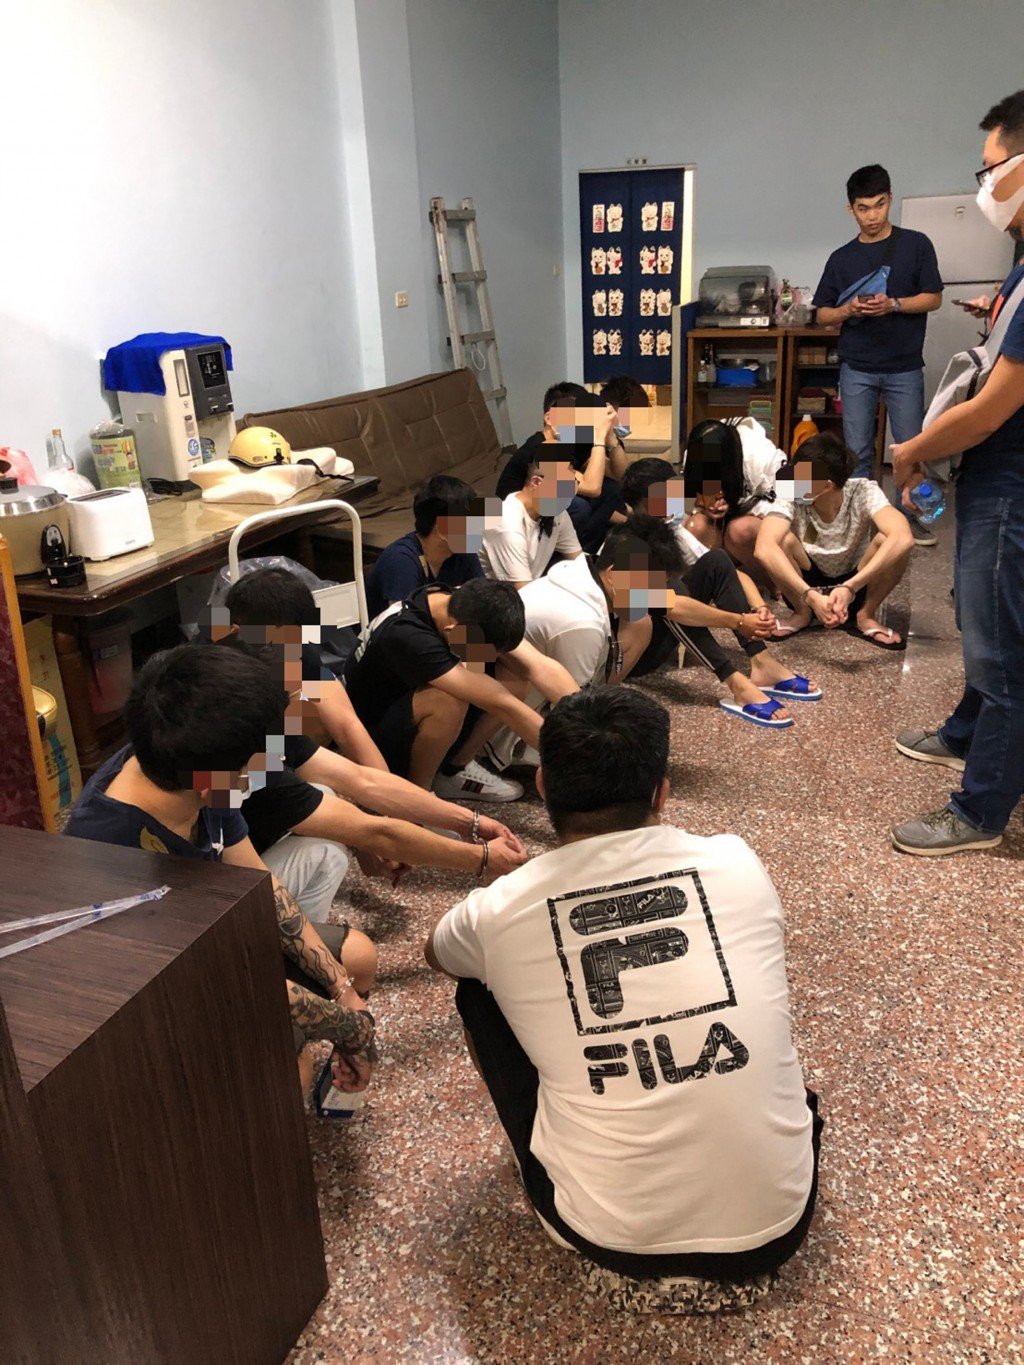 An engineer in the U.S. helped police nab a fraud ring at a Pingtung County hotel.